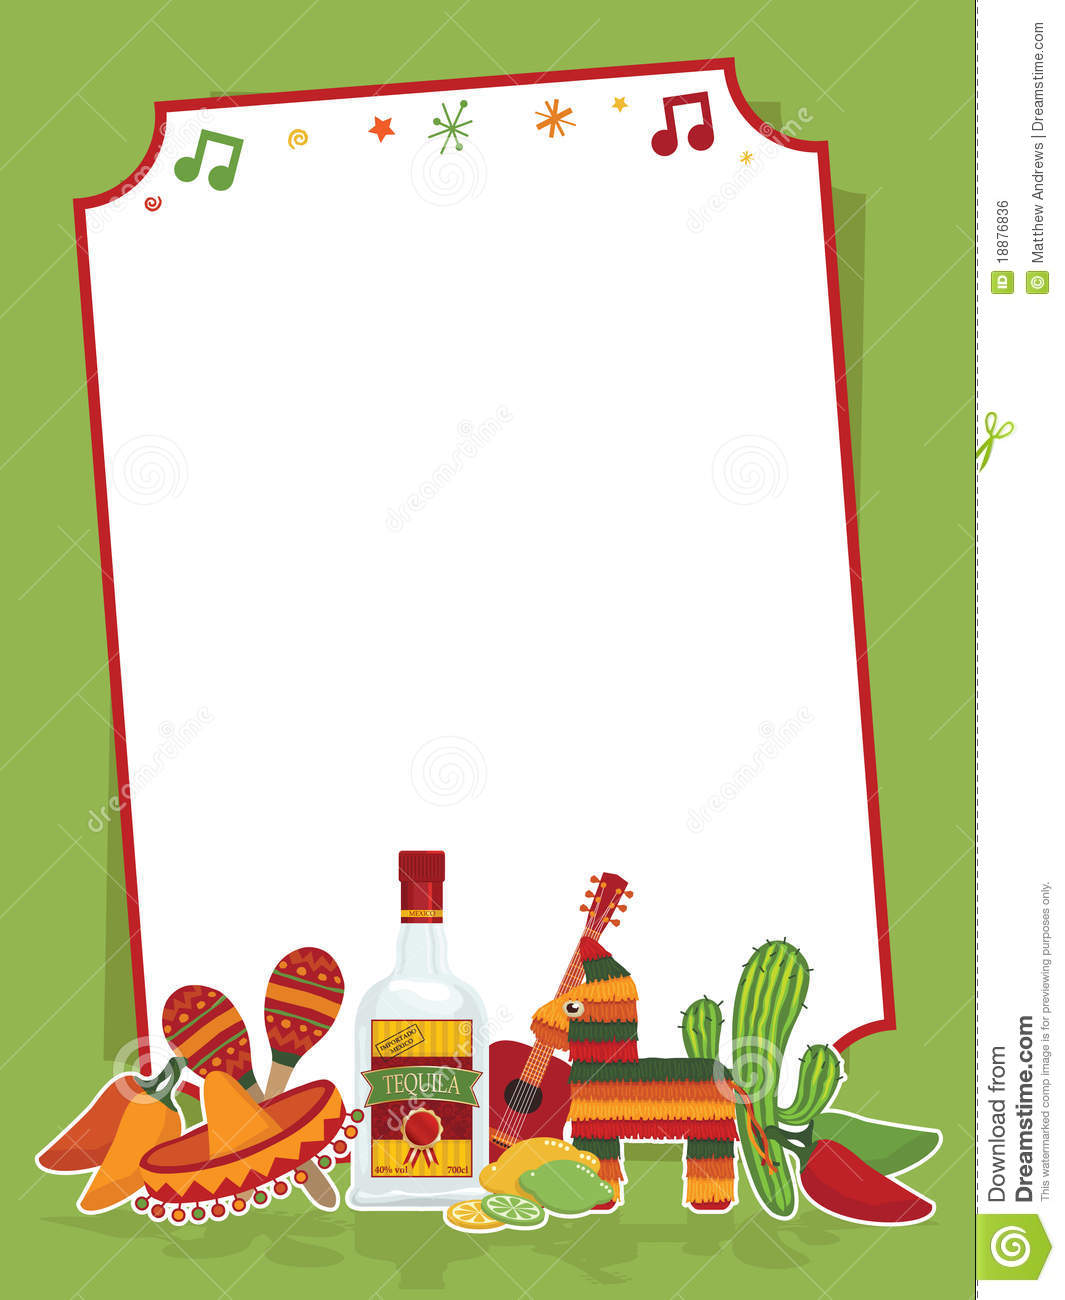 mexican party sign royalty free stock image image 18876836